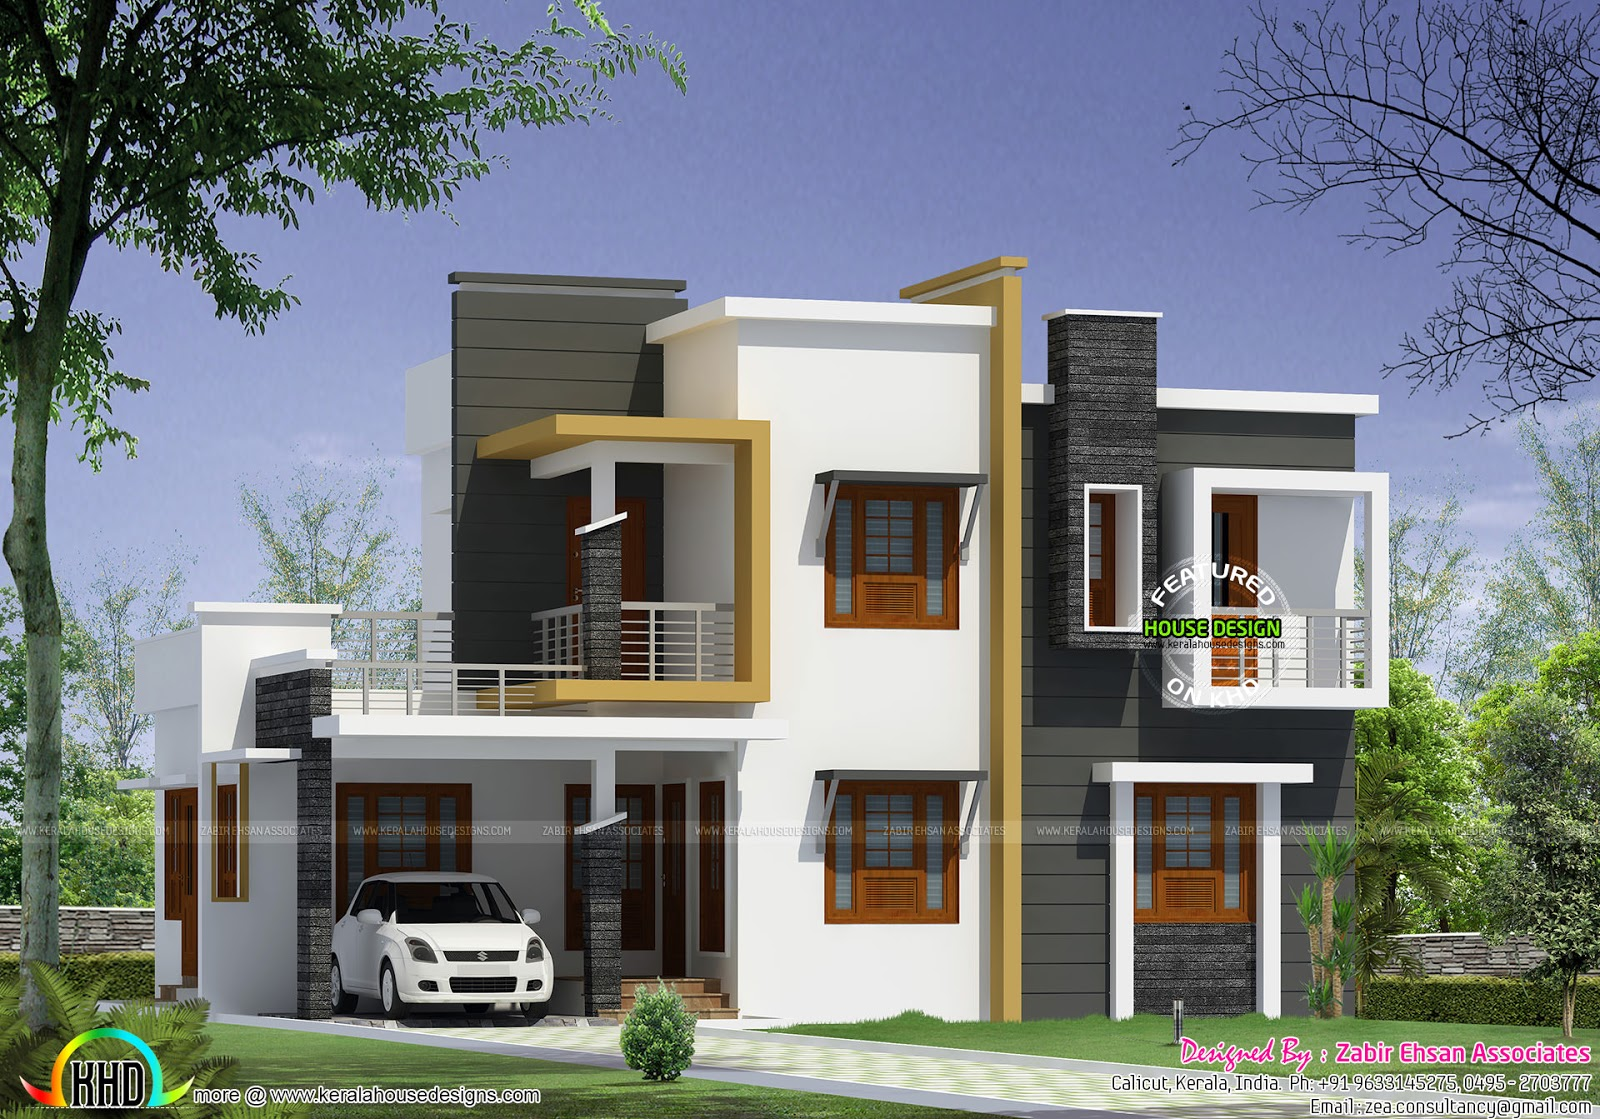 Box type modern house plan kerala home design and floor for Contemporary floor plans